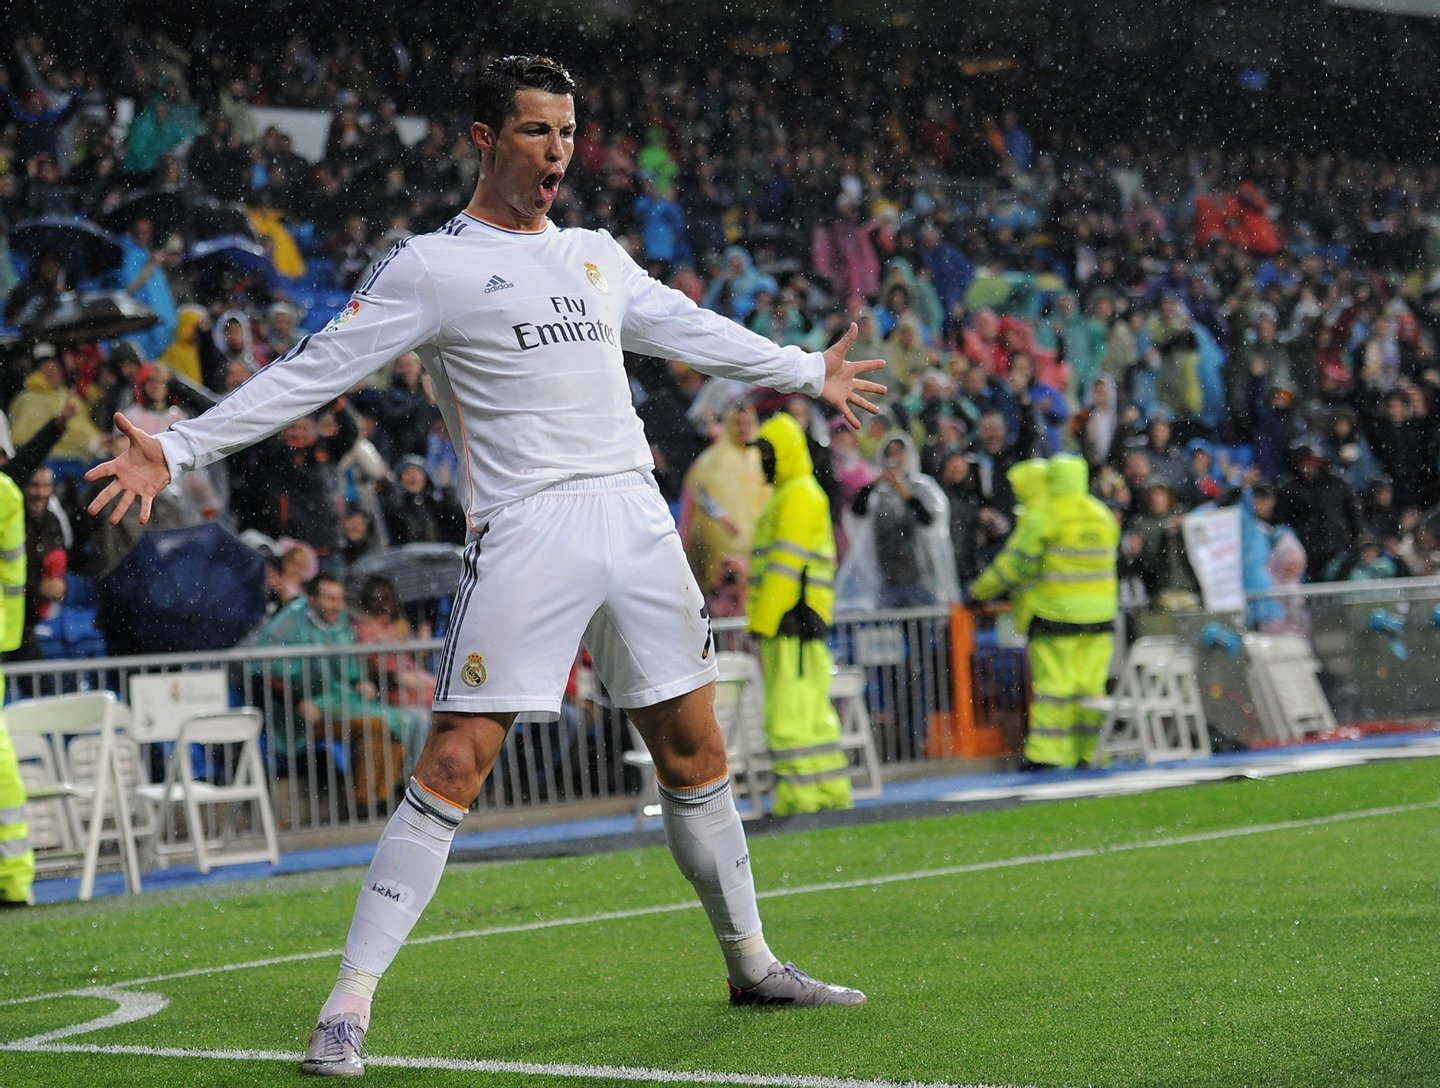 MADRID, SPAIN - MARCH 29:  Cristiano Ronaldo of Real Madrid FC celebrates after scoring his team's opening goal during the La Liga match between Real Madrid CF and Rayo Vallecano de Madrid at Santiago Bernabeu stadium on March 29, 2014 in Madrid, Spain.  (Photo by Denis Doyle/Getty Images)